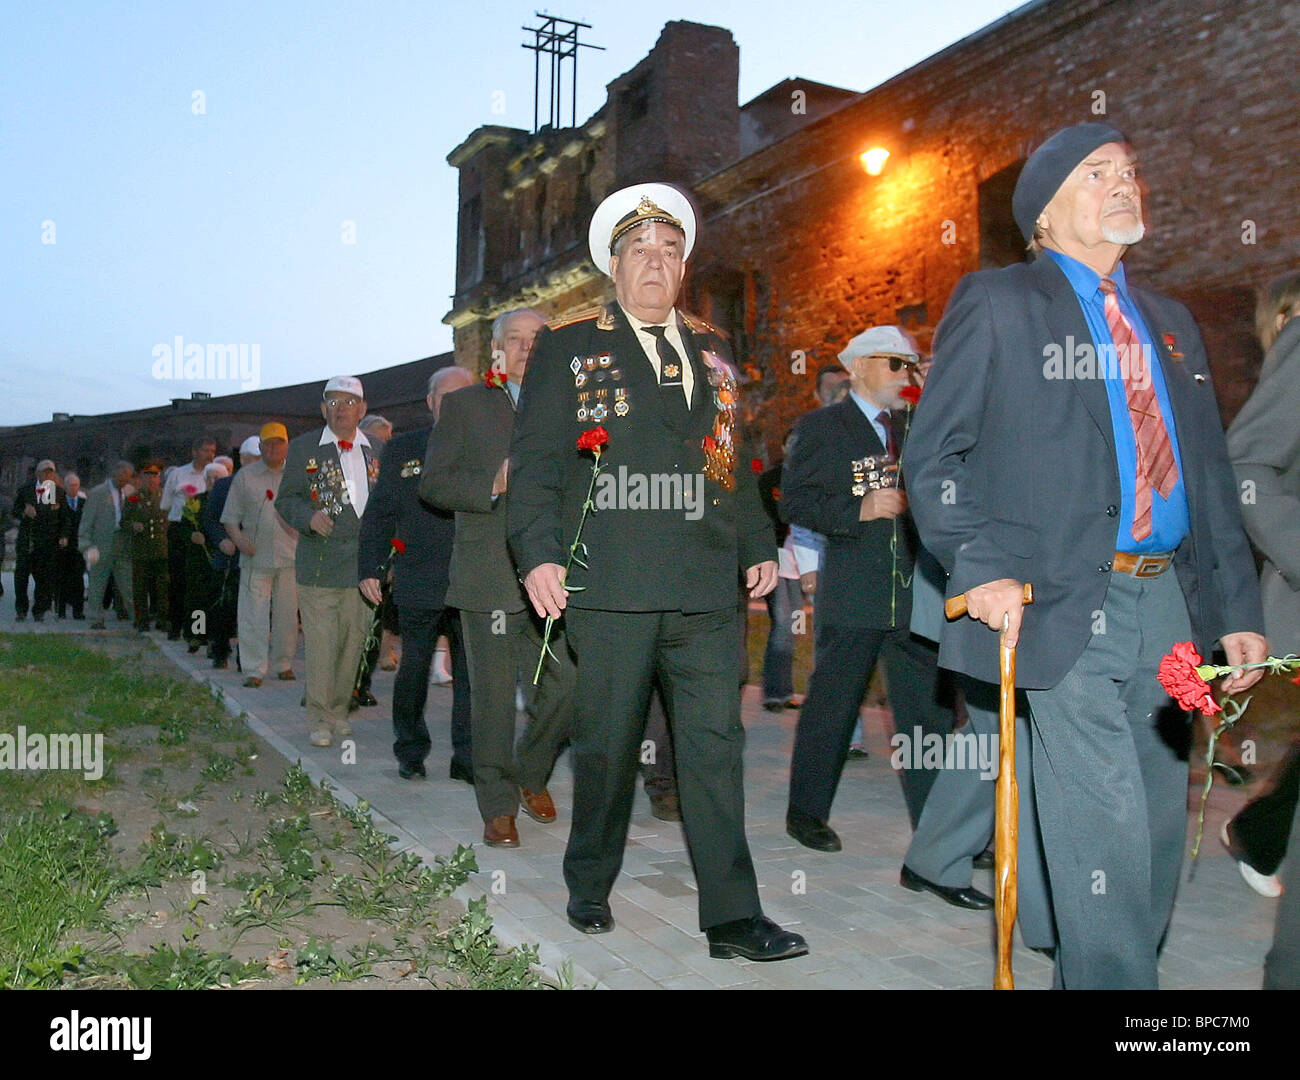 Russia remembers war dead of the Great Patriotic War of 1941-1945 on Memory and Sorrow Day - Stock Image